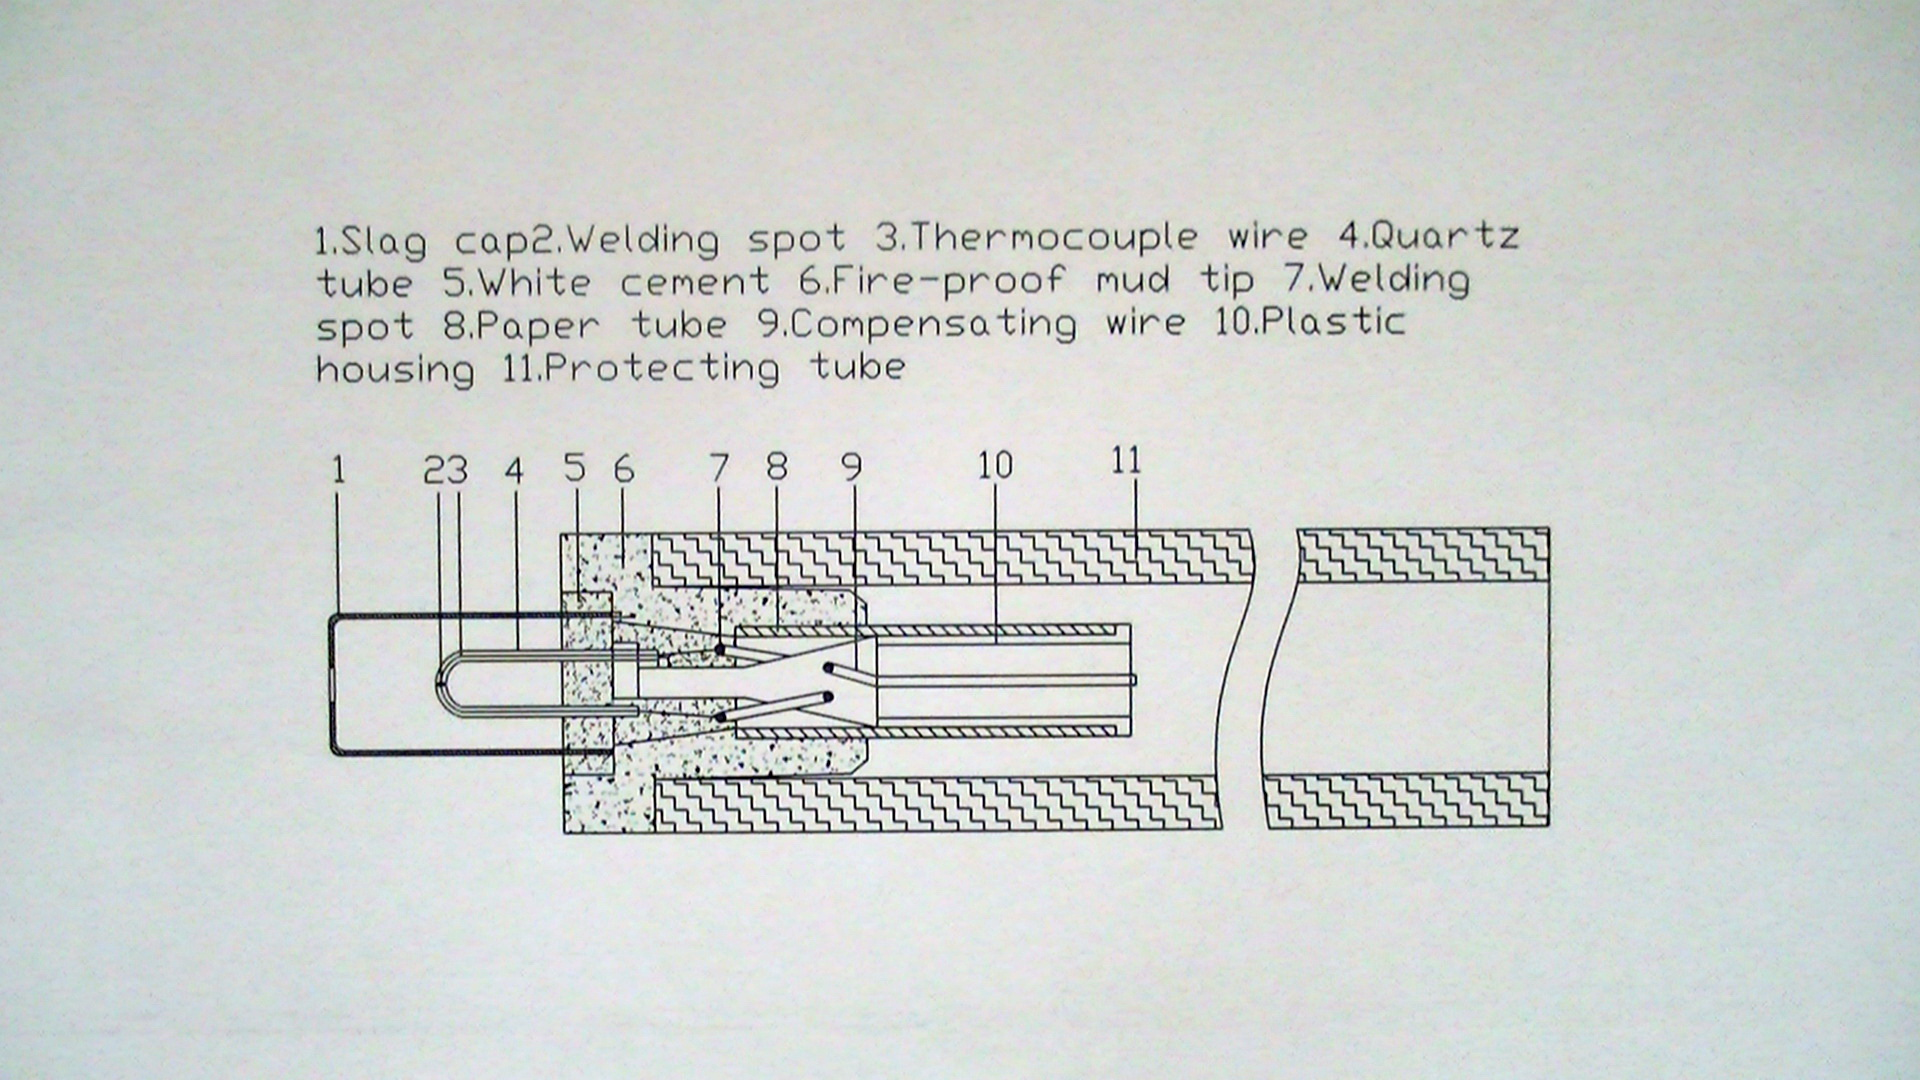 thermocouple structure